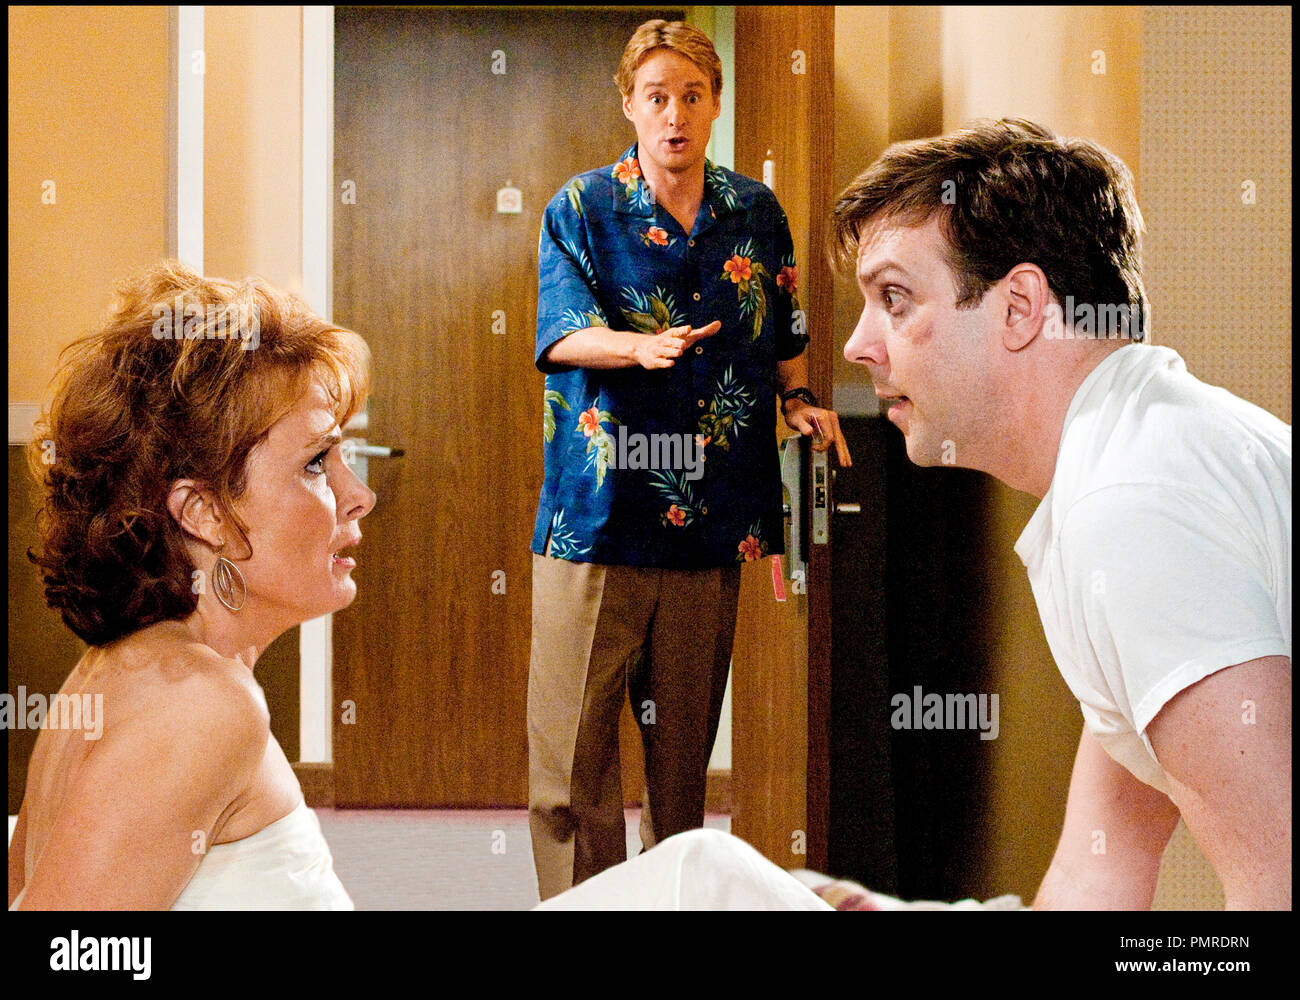 Prod DB © New Line Cinema - Conundrum Entertainment / DR BON A TIRER (B.A.T.) (HALL PASS) de Bobby Farrelly et Peter Farrelly 2011 USA avec Kristin Carey, Owen Wilson et Jason Sudeikis surprendre au lit, tromper, amant, adultere - Stock Image